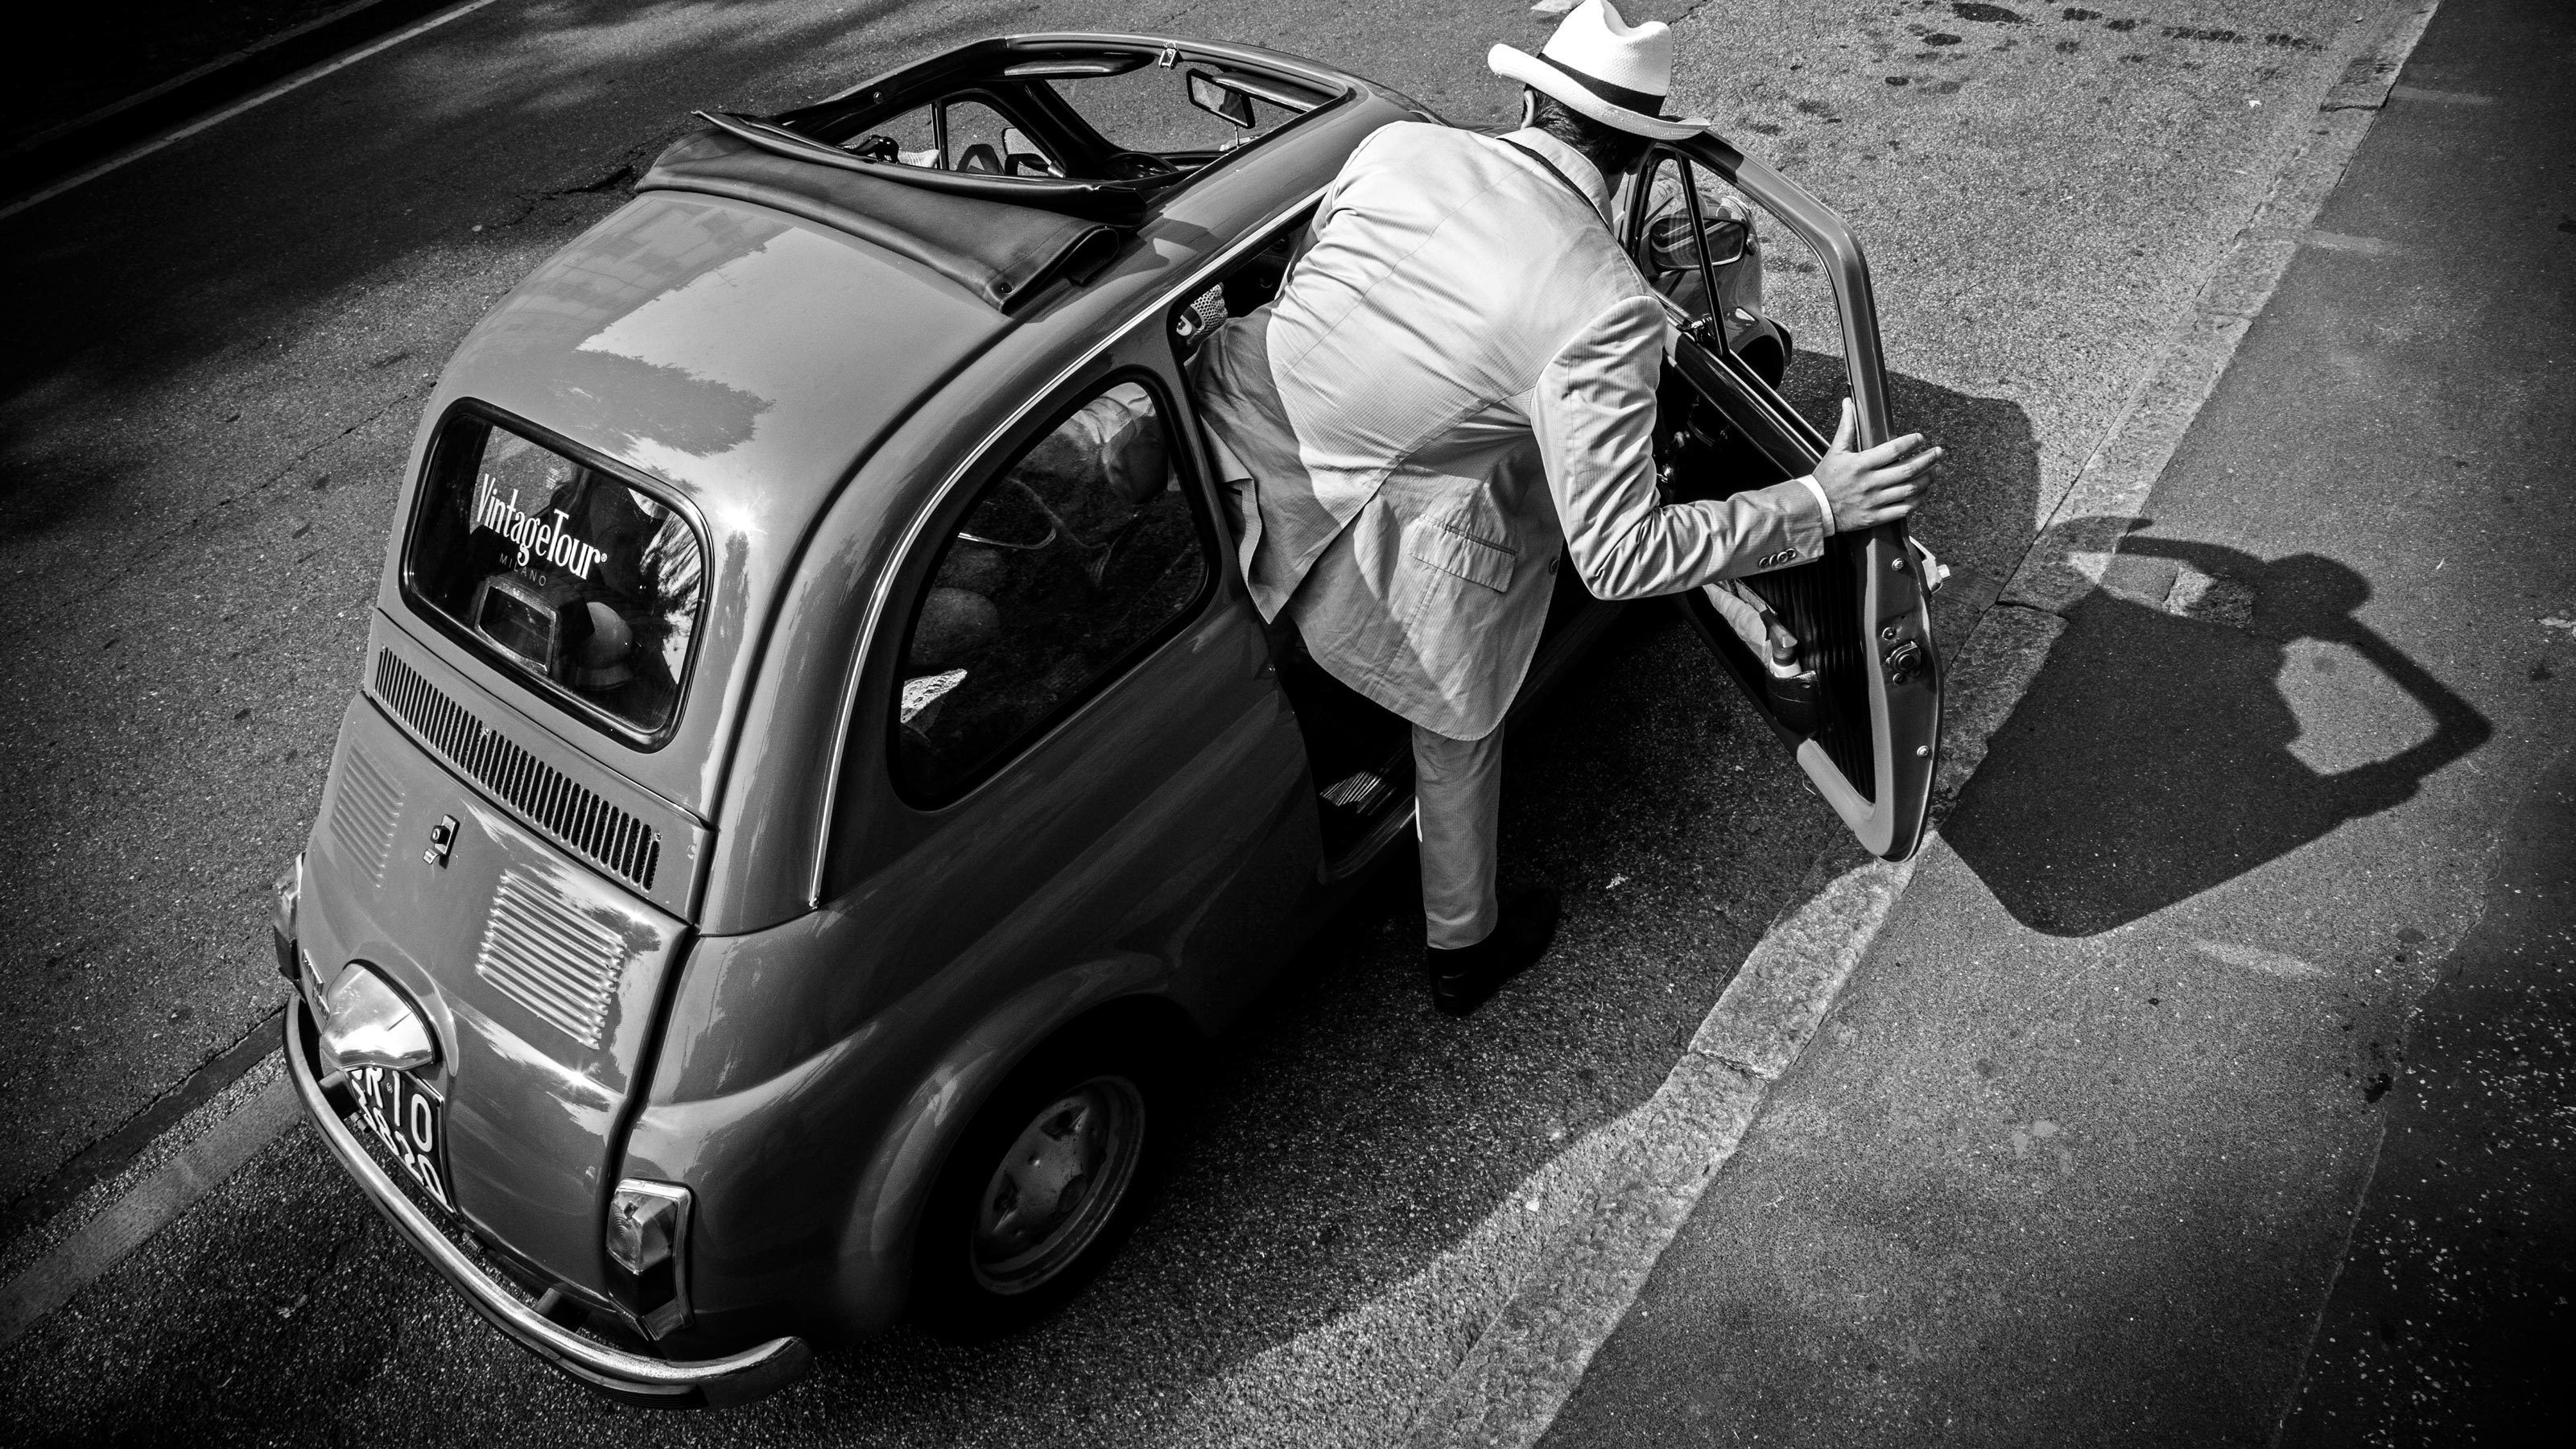 man getting in vintage Fiat vehicle in Italy